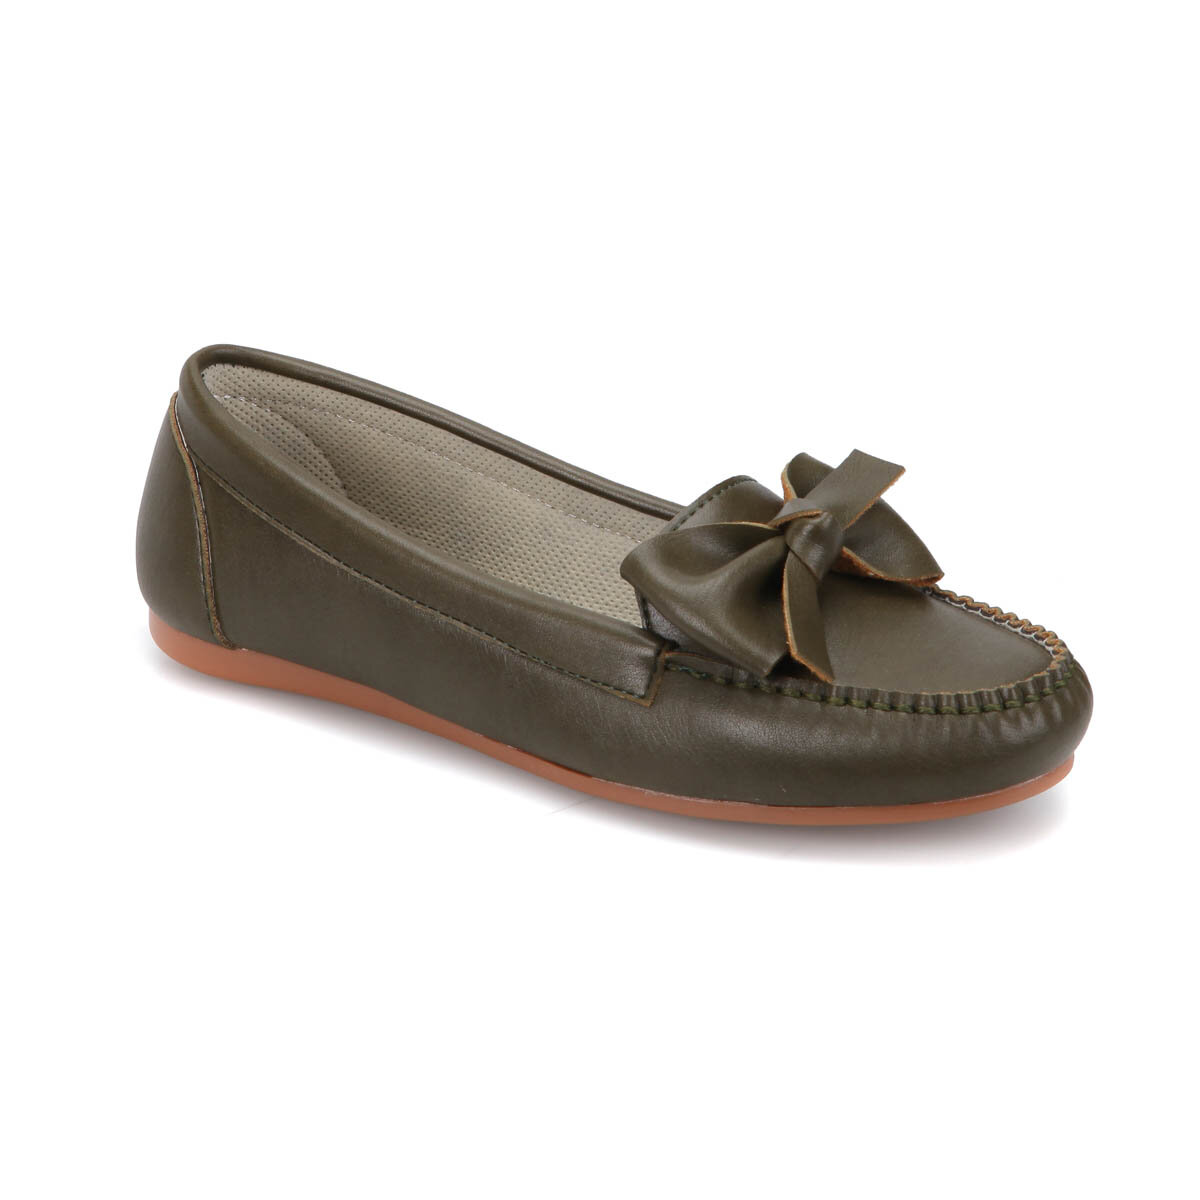 FLO DW17057 Khaki Women Loafer Shoes Miss F